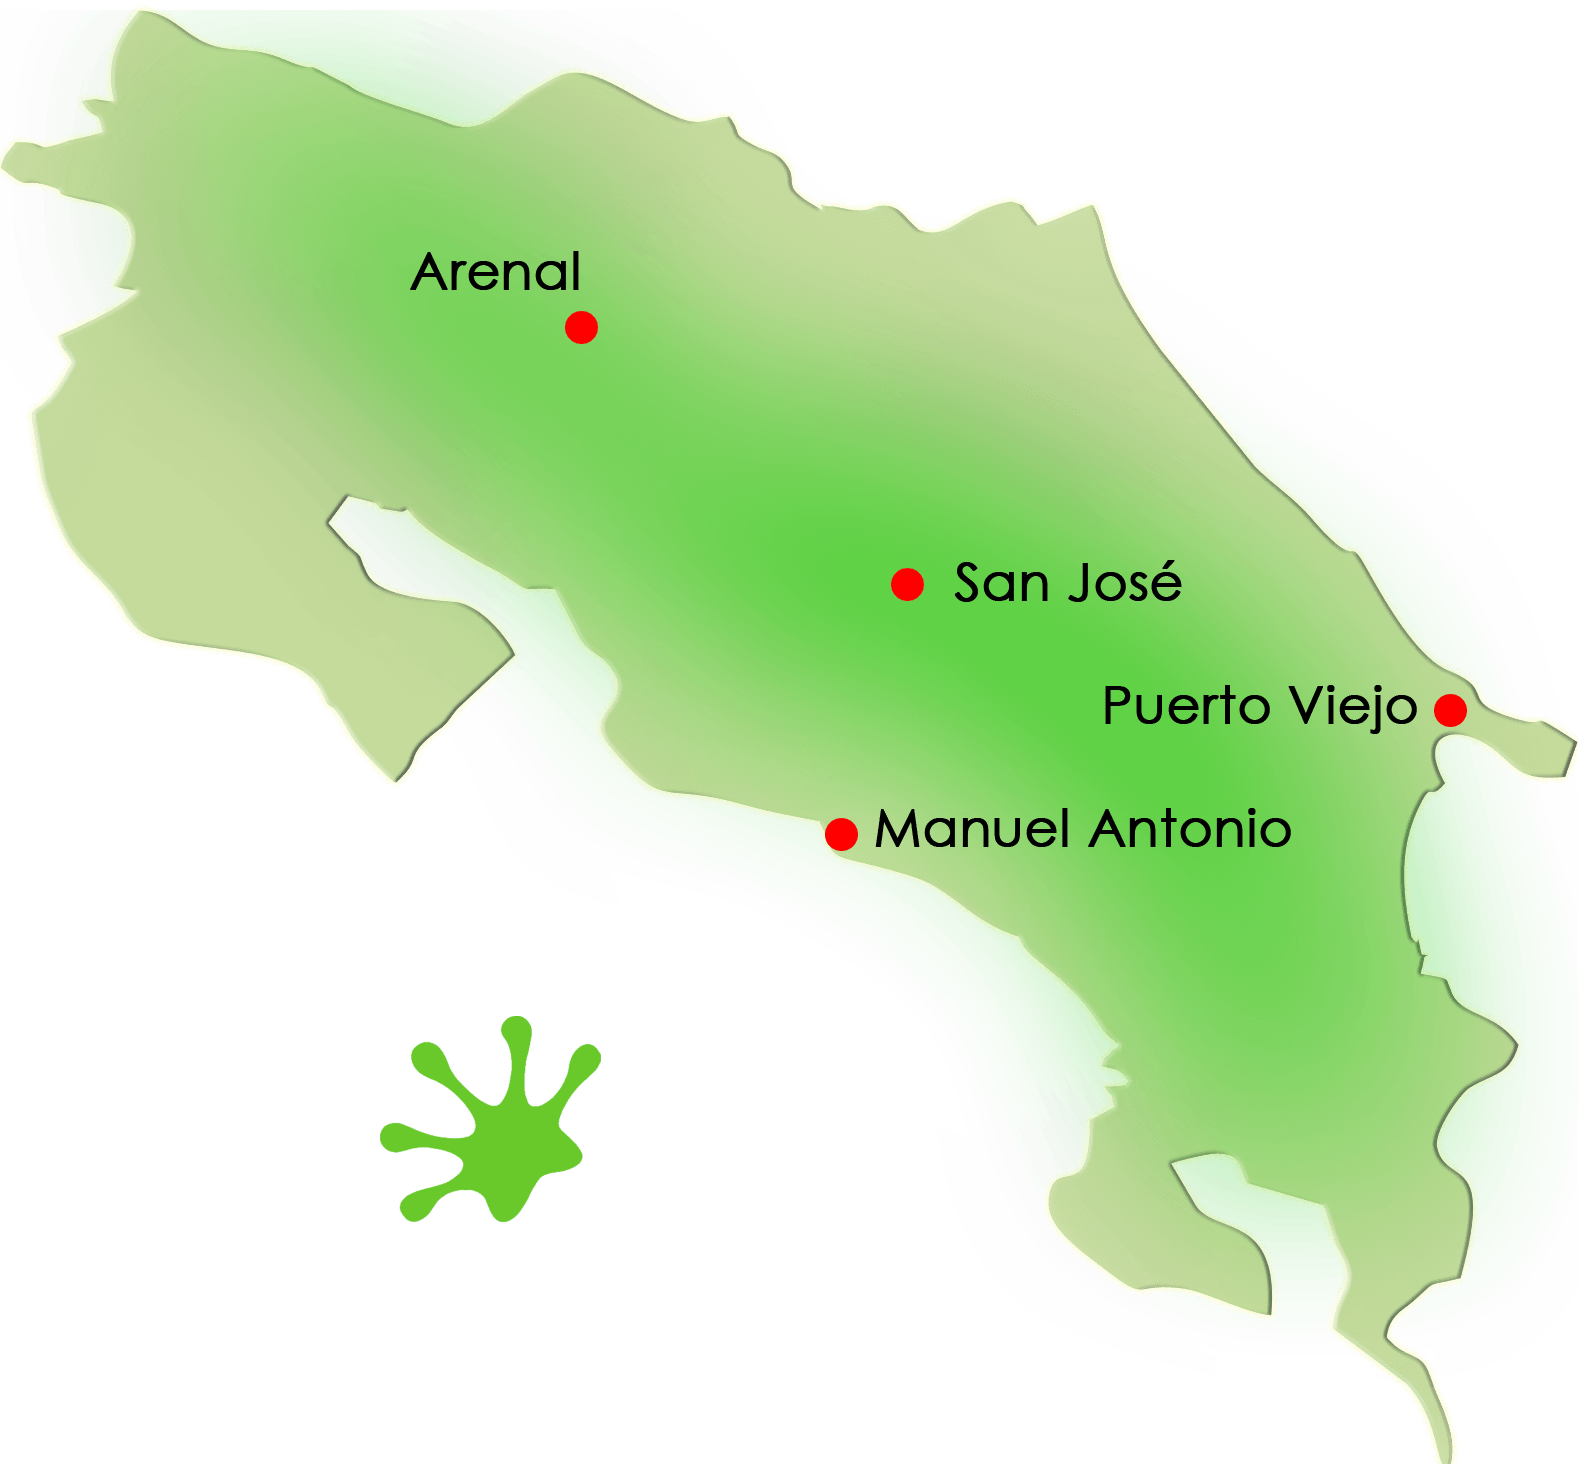 Gecko Trail | What to Do in Costa Rica - SJ-PV-AR-MA